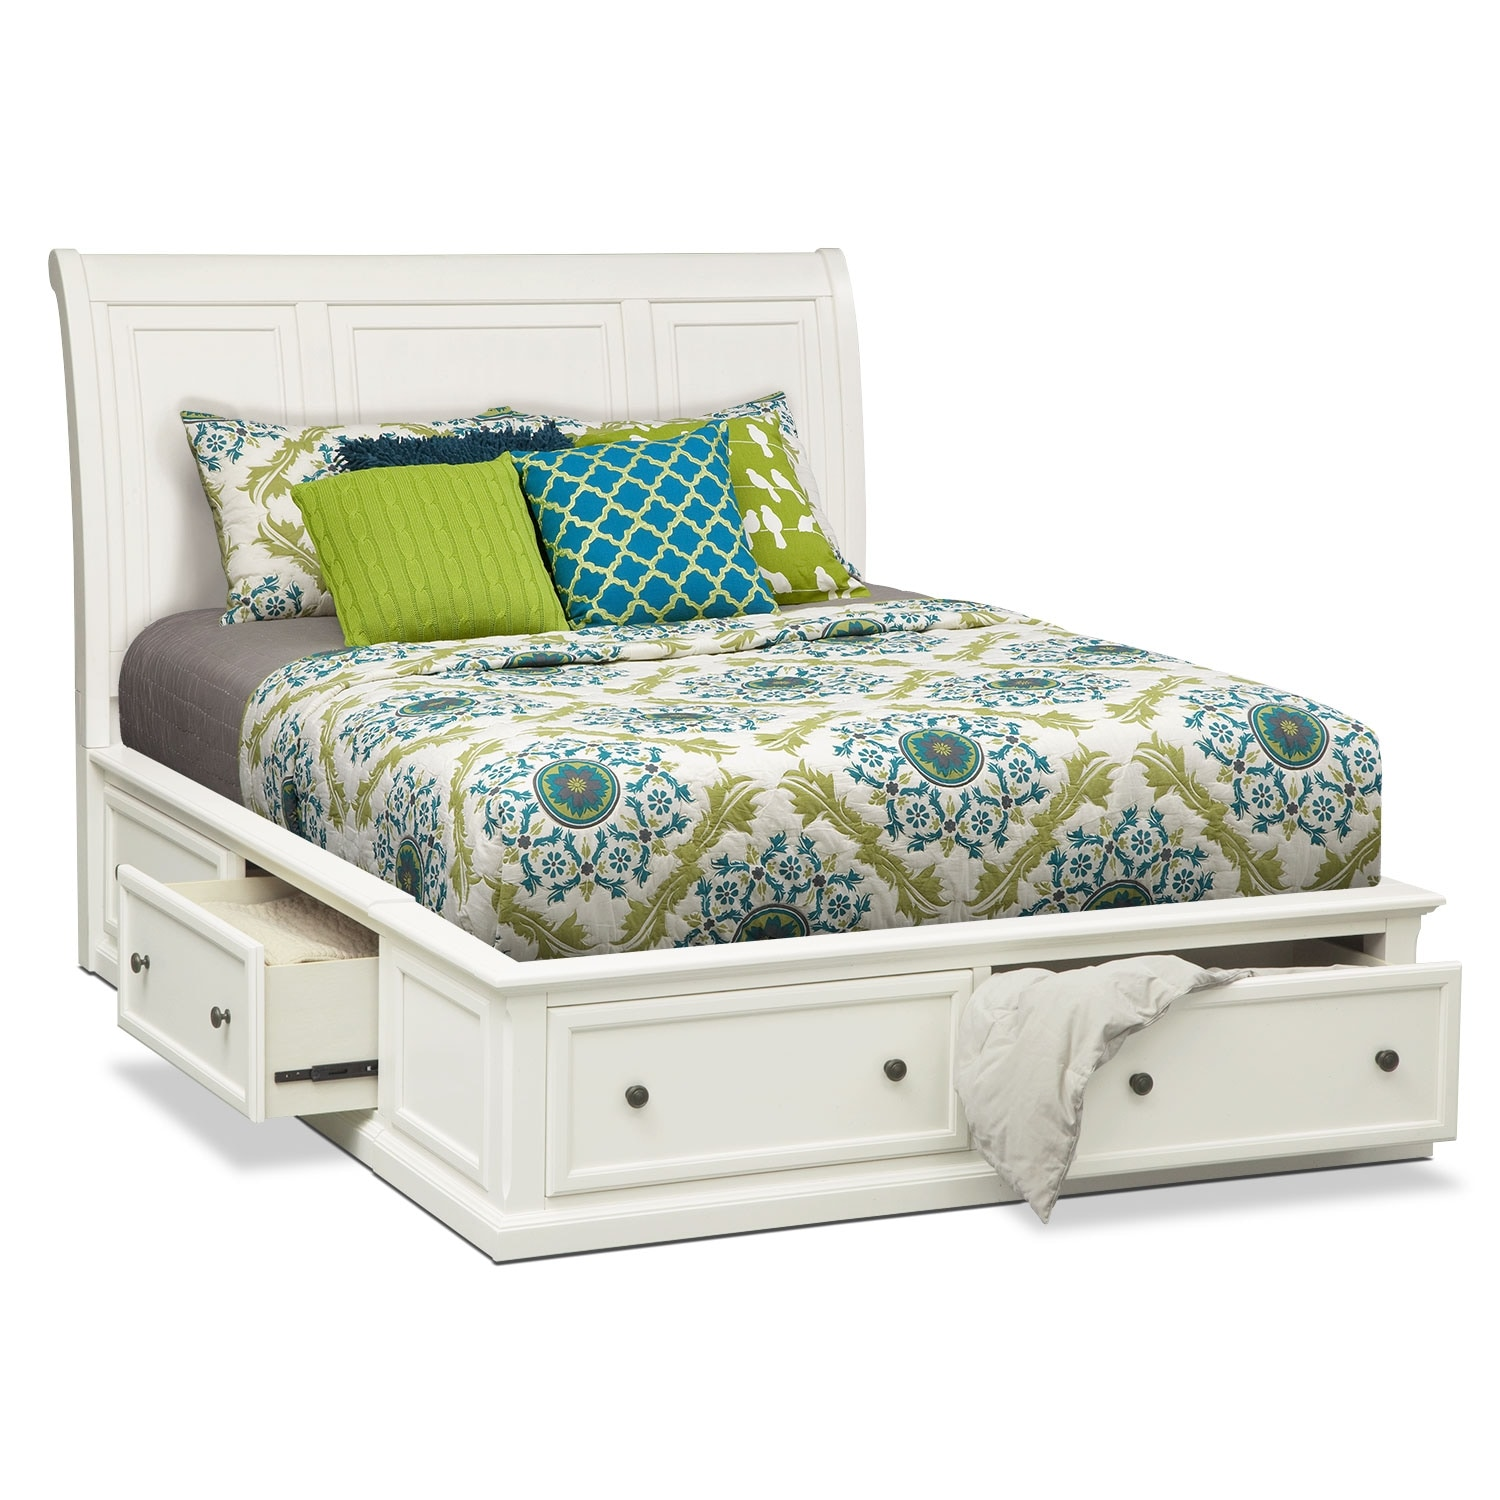 beds size white full storage queen frame wood with platform drawers bed